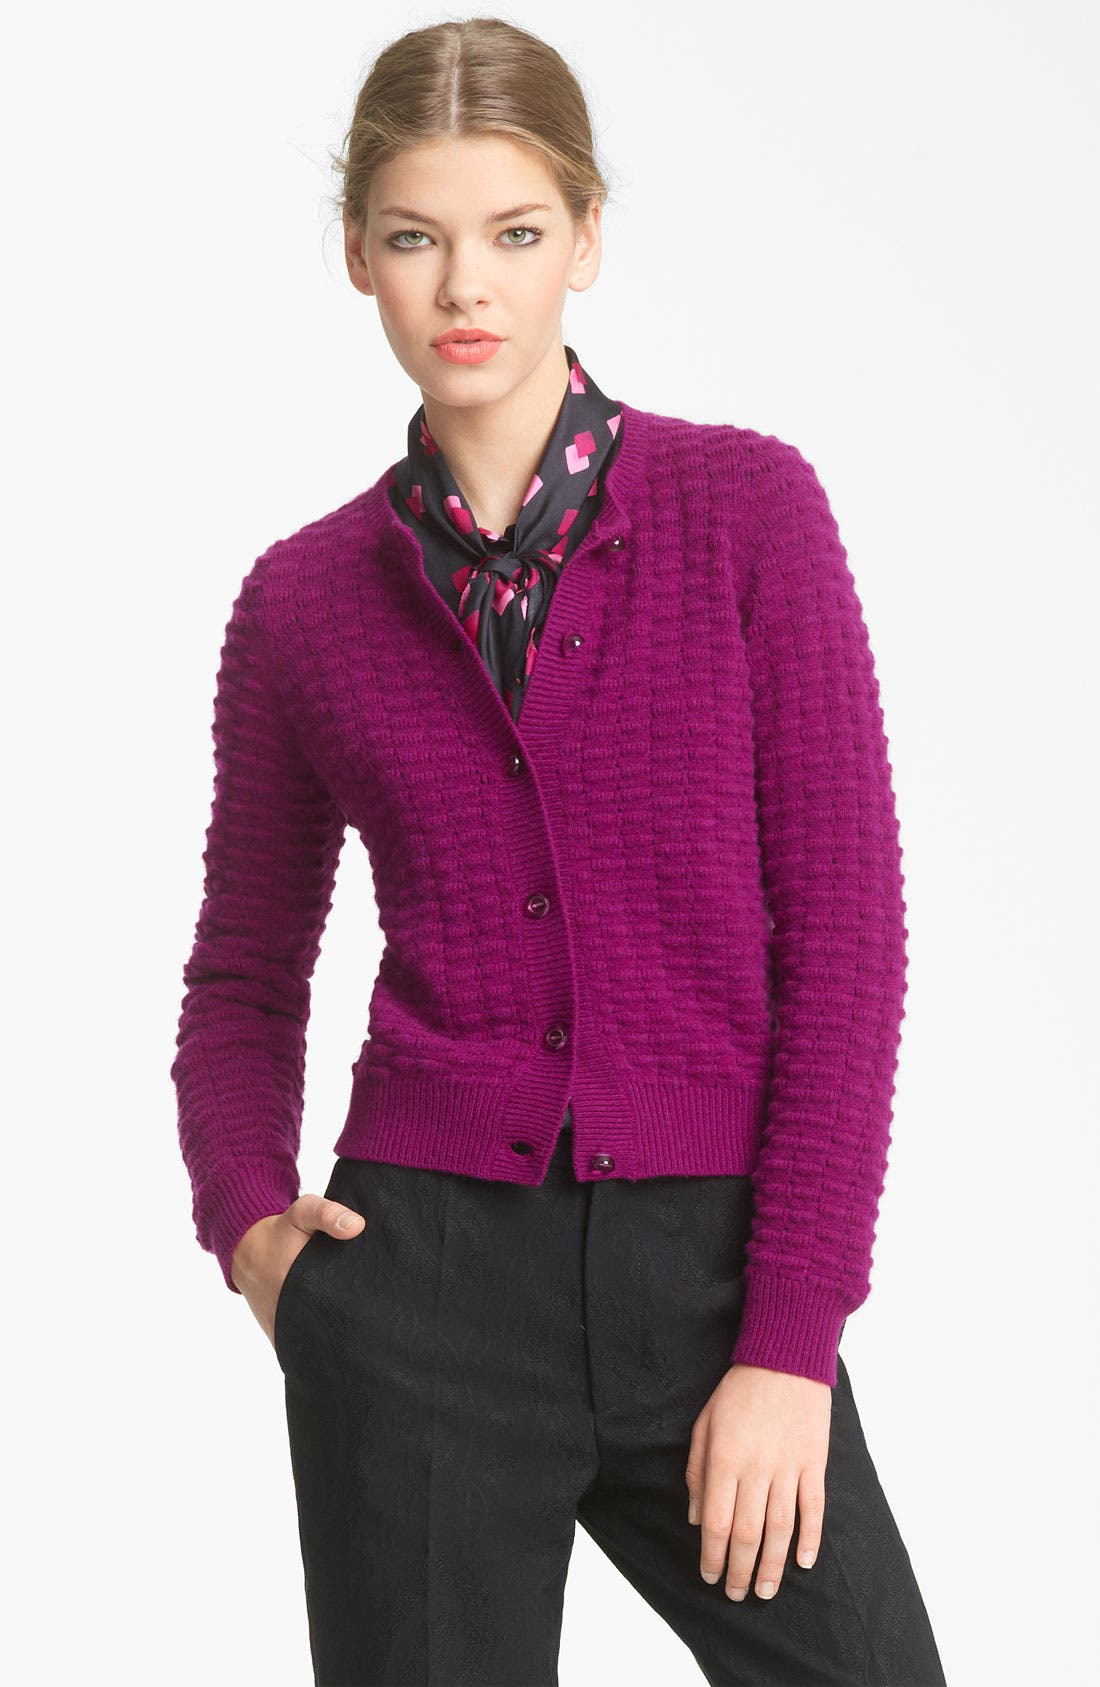 Alternate Image 1 Selected - MARC JACOBS Cashmere Cardigan